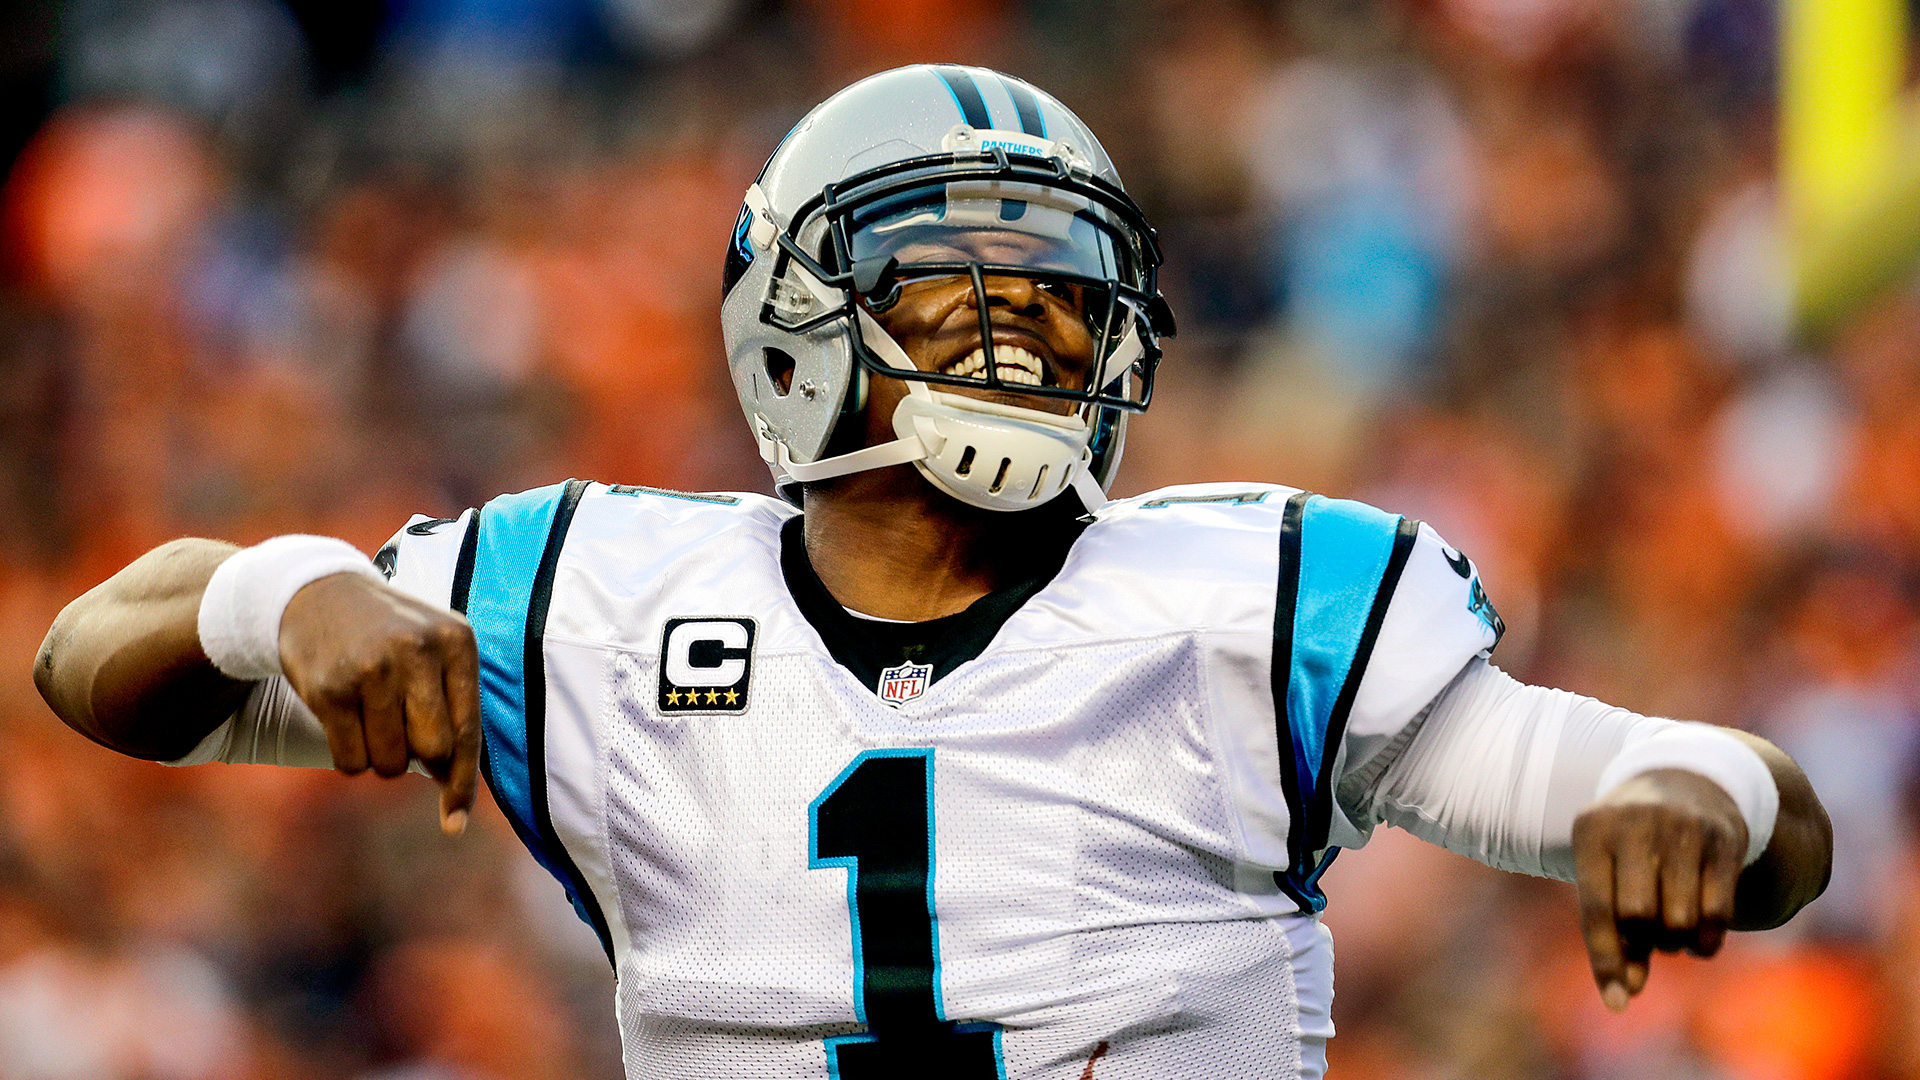 Cam Newton featured in Under Armour ad ahead of National Football League kickoff